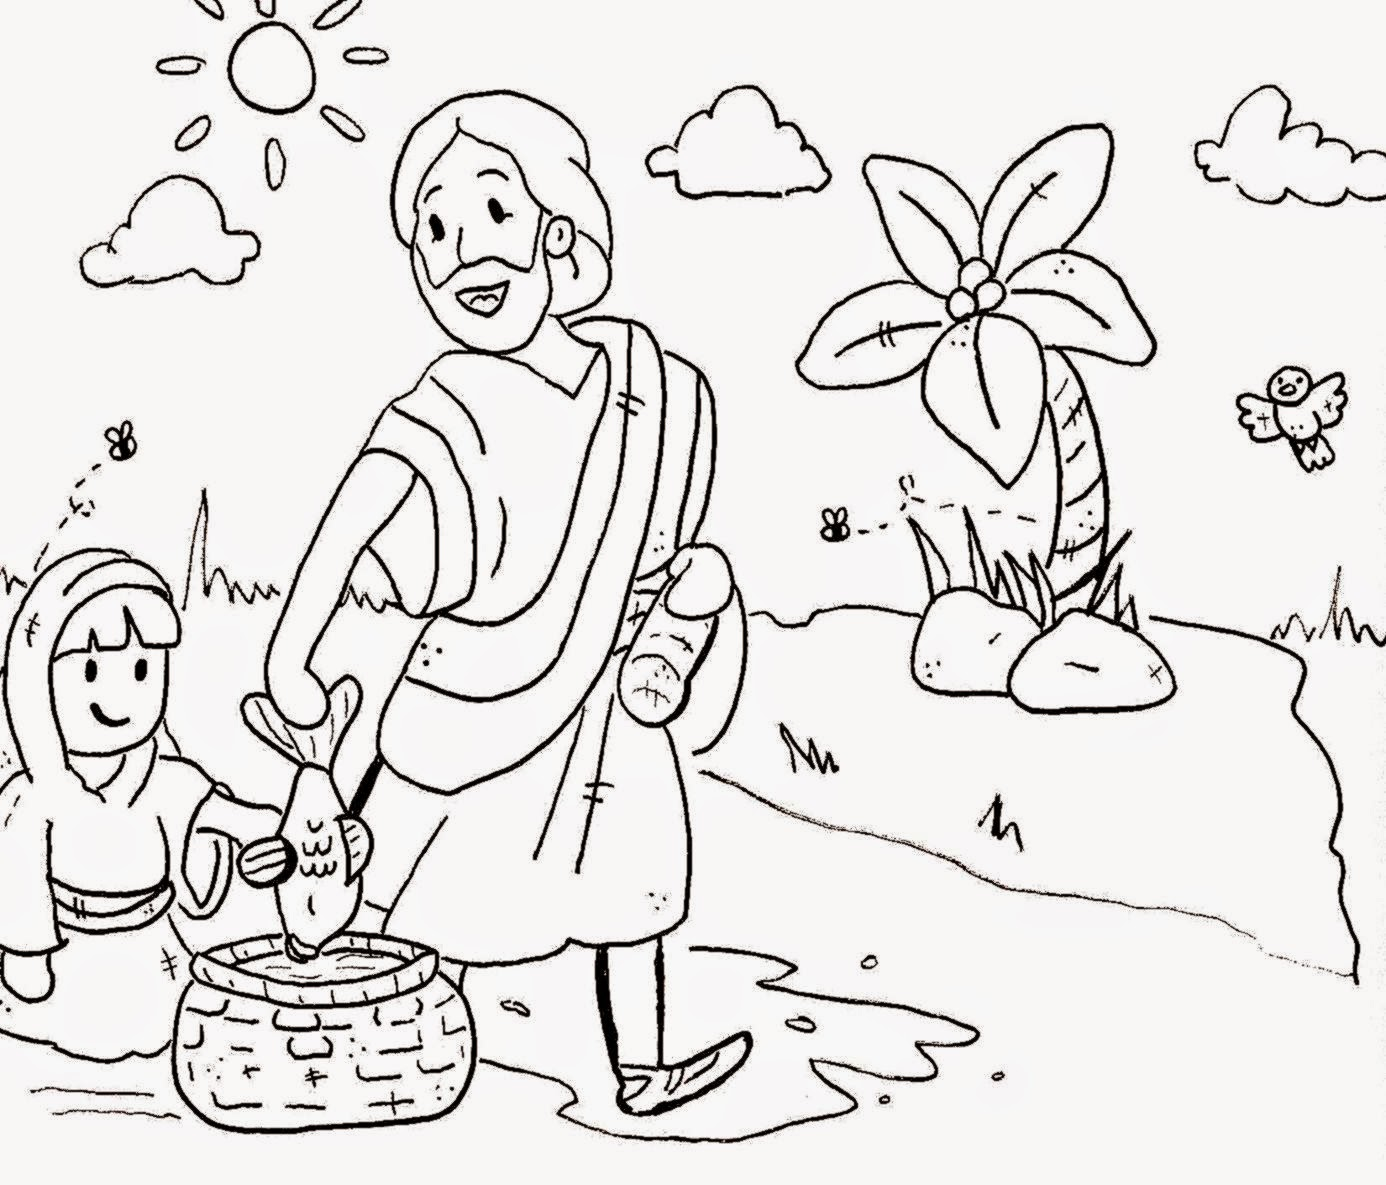 - Free Coloring Pictures: Sunday School Coloring Pages